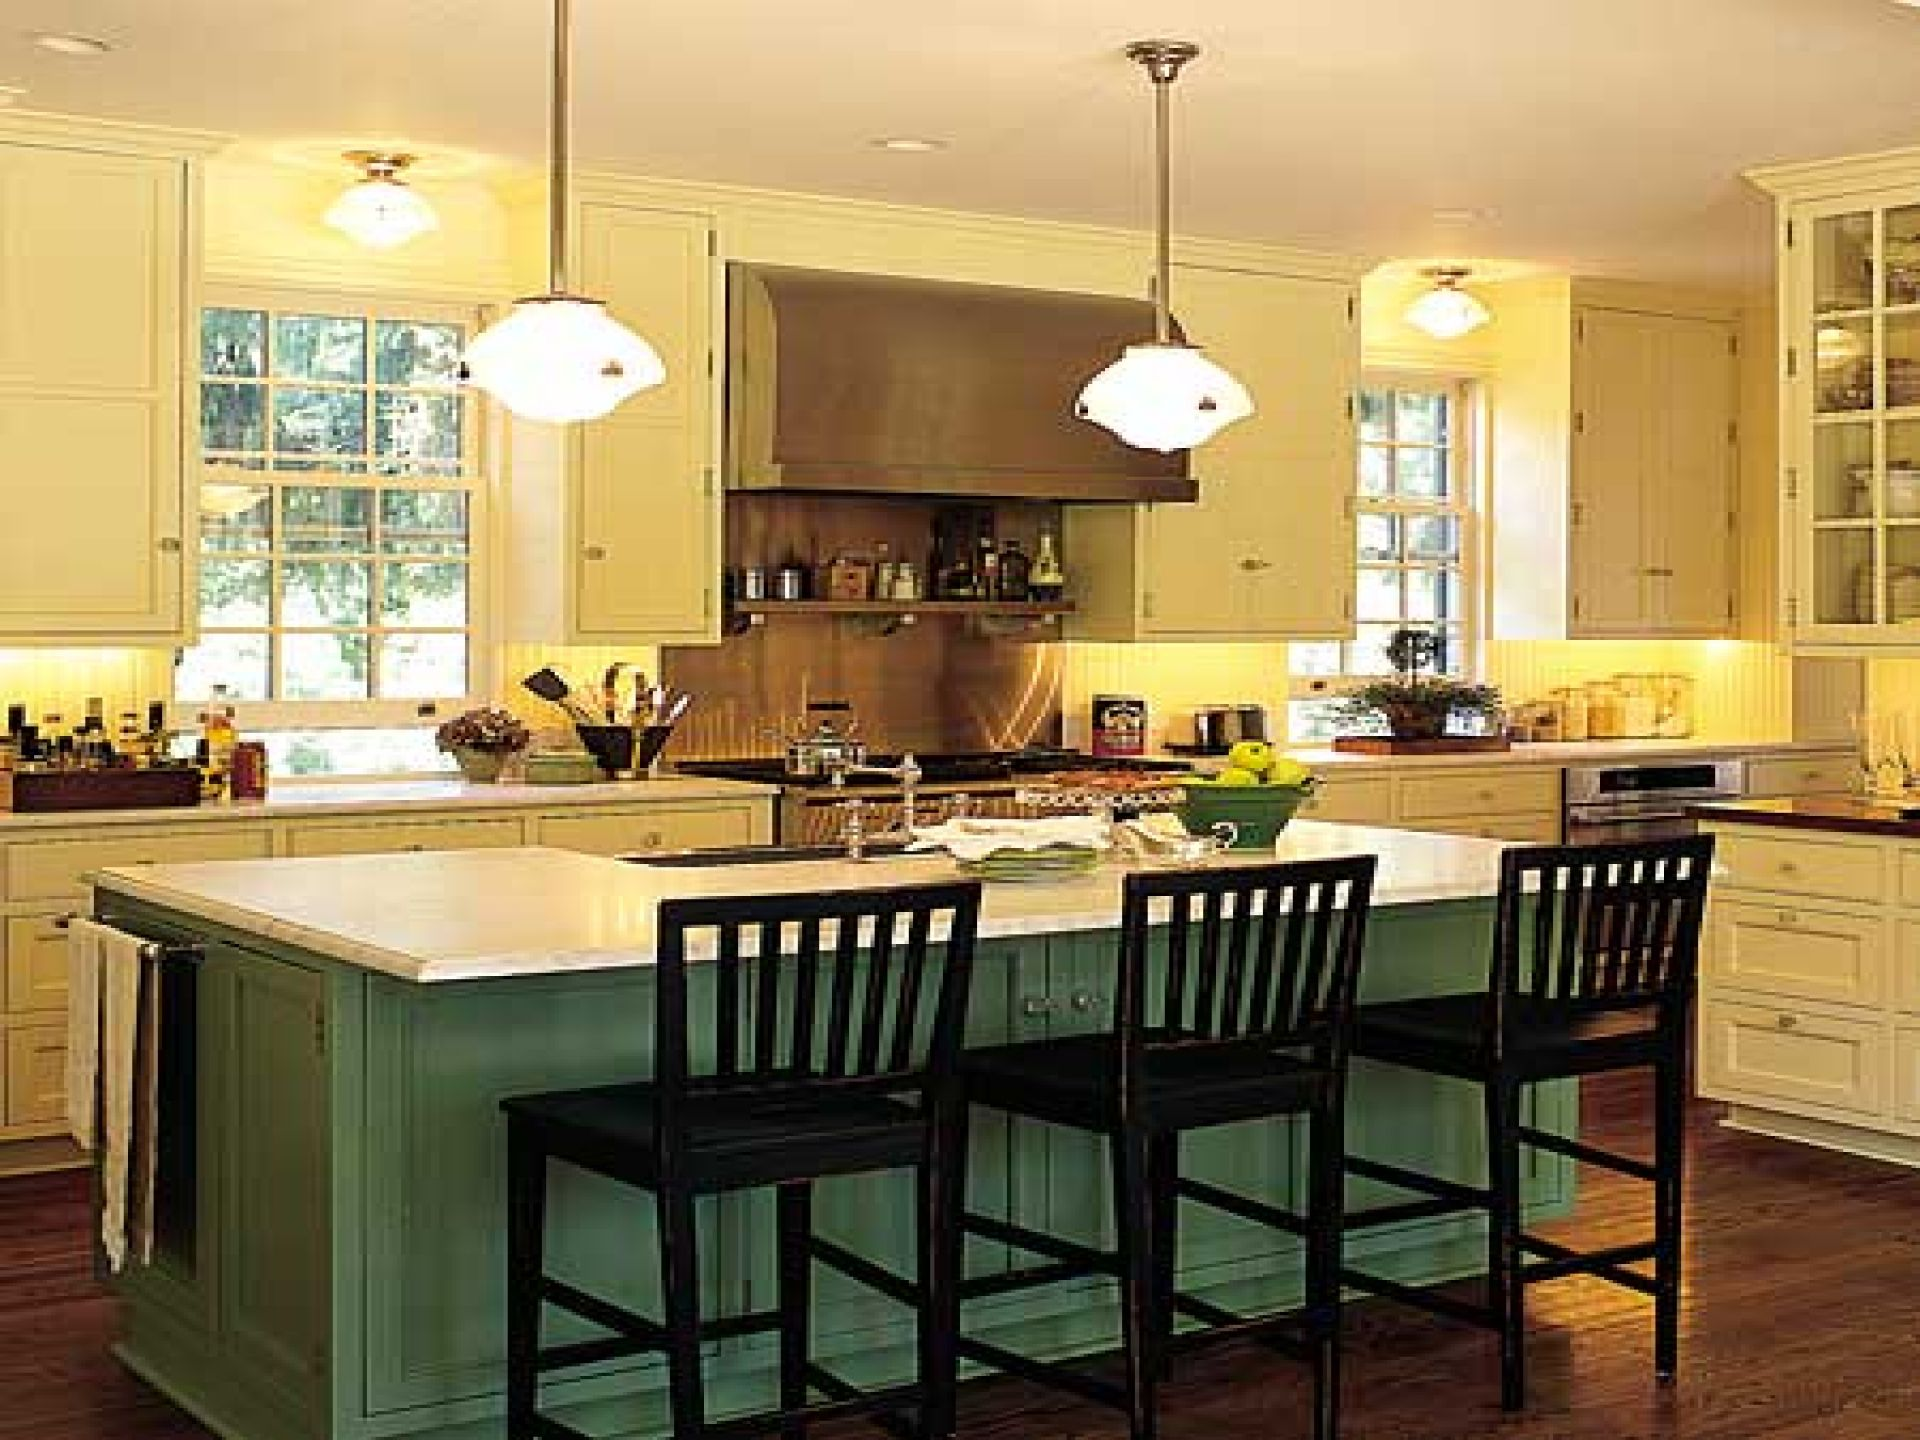 Add Bright Lamps above Old Fashioned Grey Kitchen Island Plans and Black Stools on Hardwood Flooring